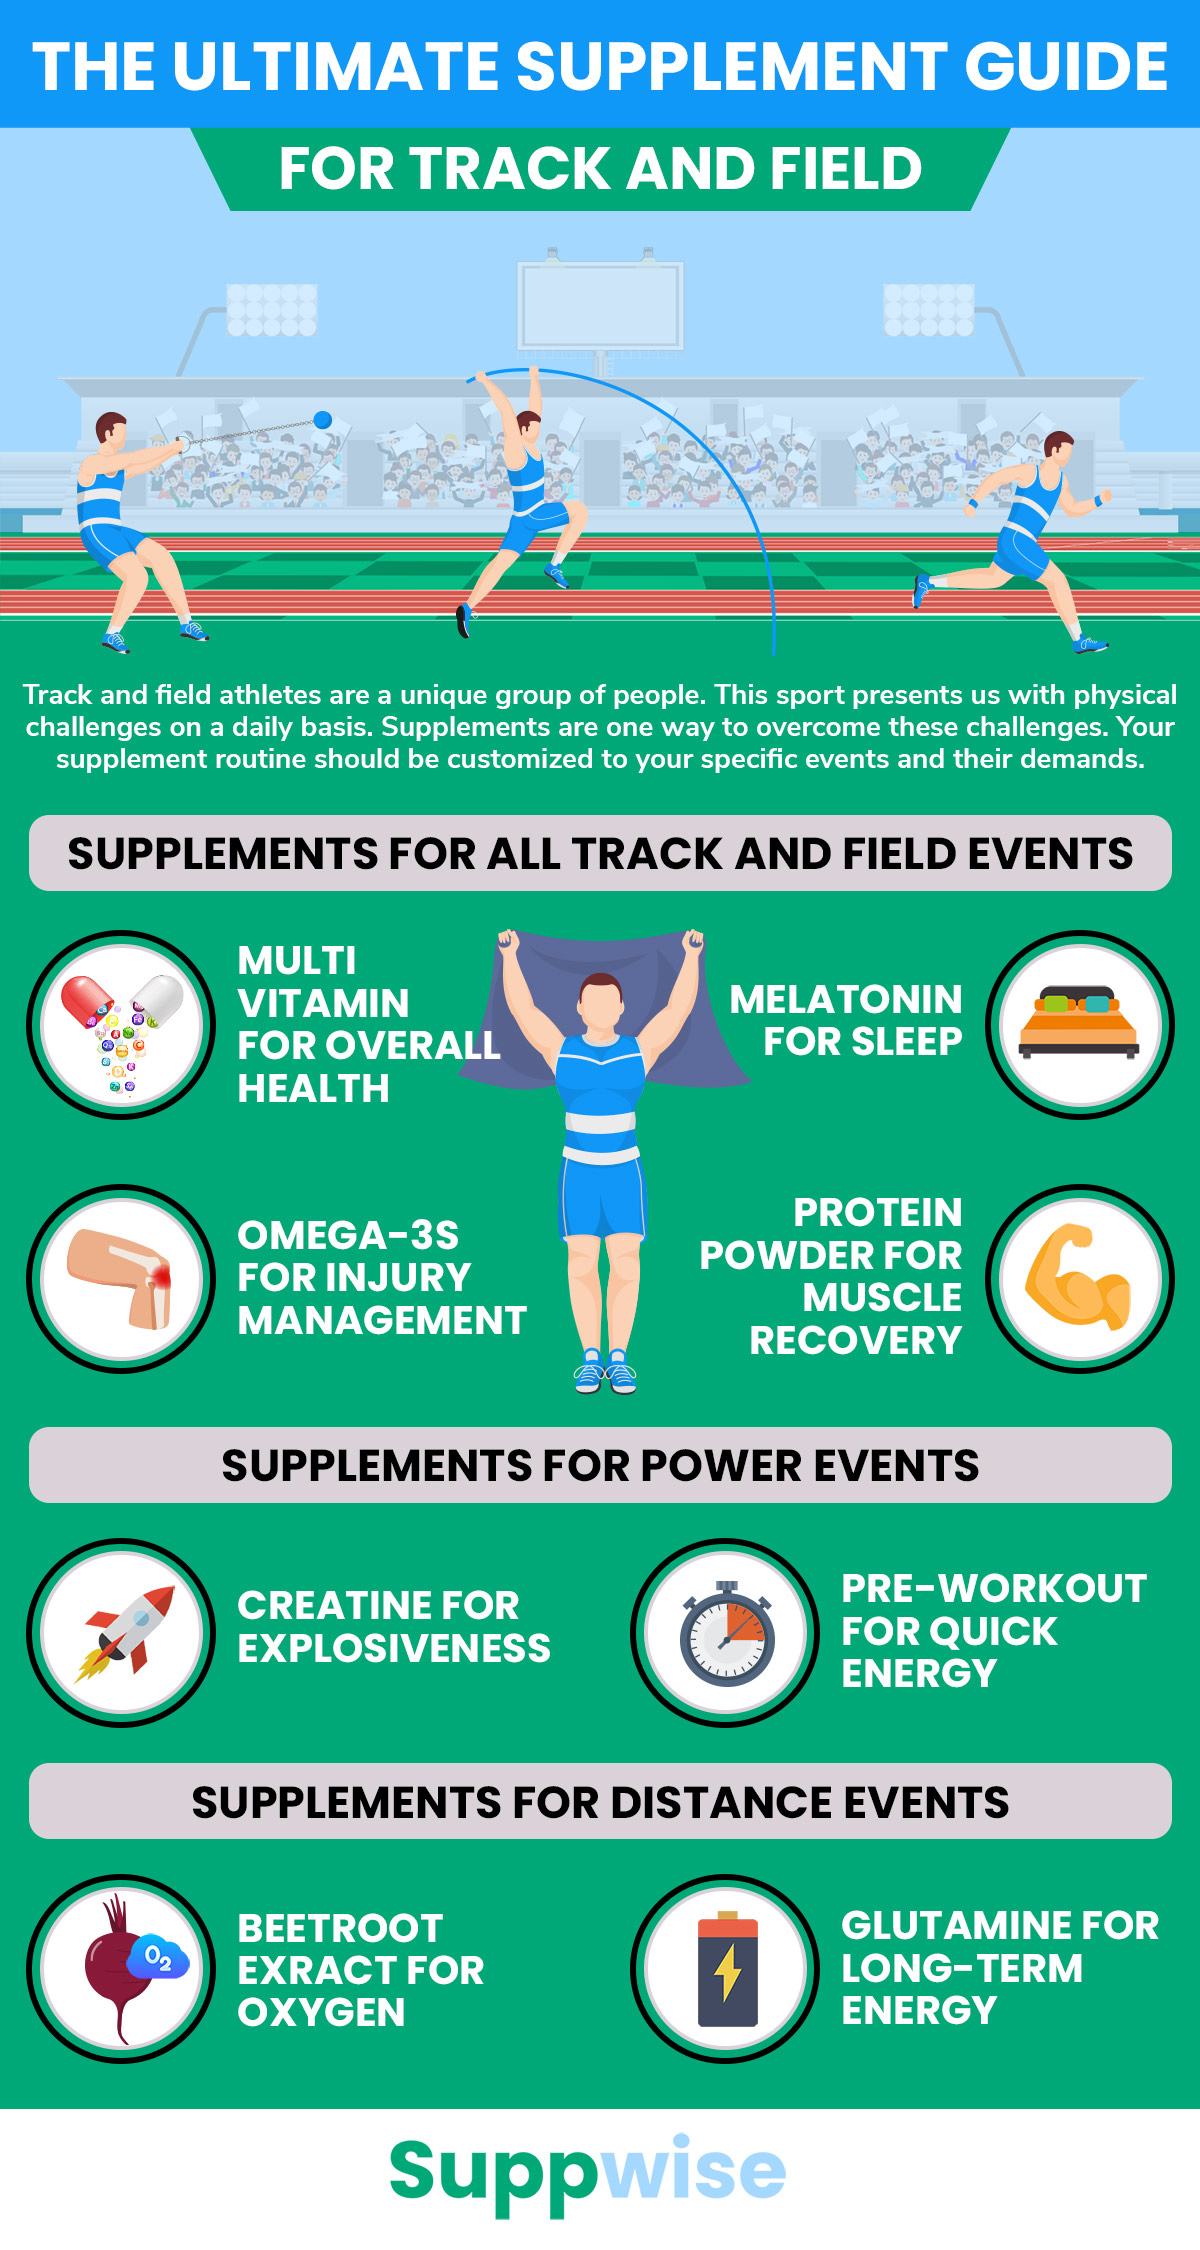 The Ultimate Supplement Guide for Track and Field